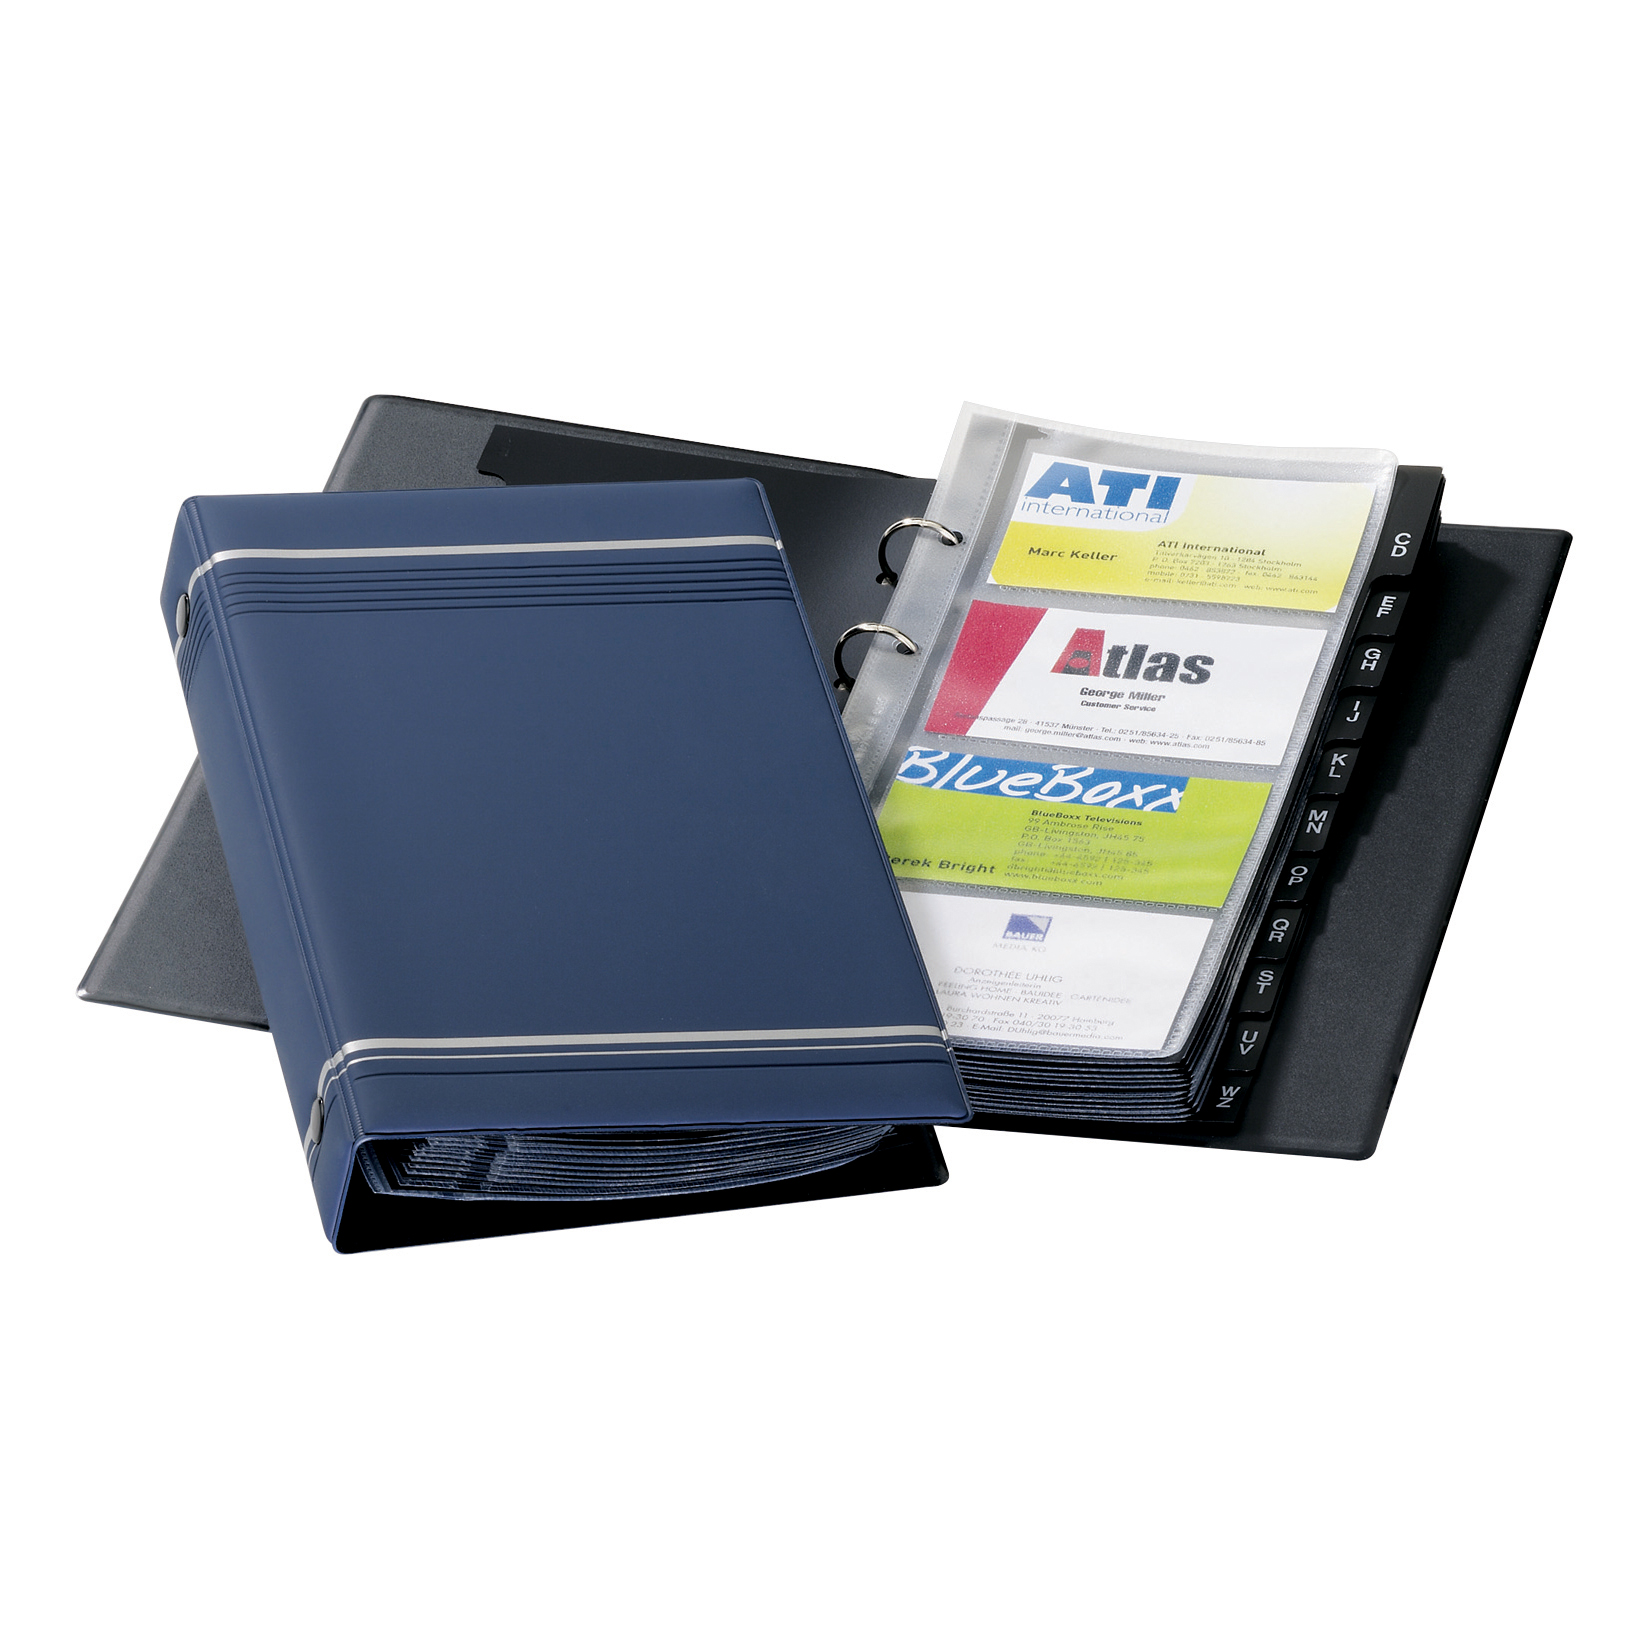 Image for Durable Visifix Business Card Album 4-ring A-Z Index Capacity 200 W145xH255mm Dark Blue Ref 2385-07